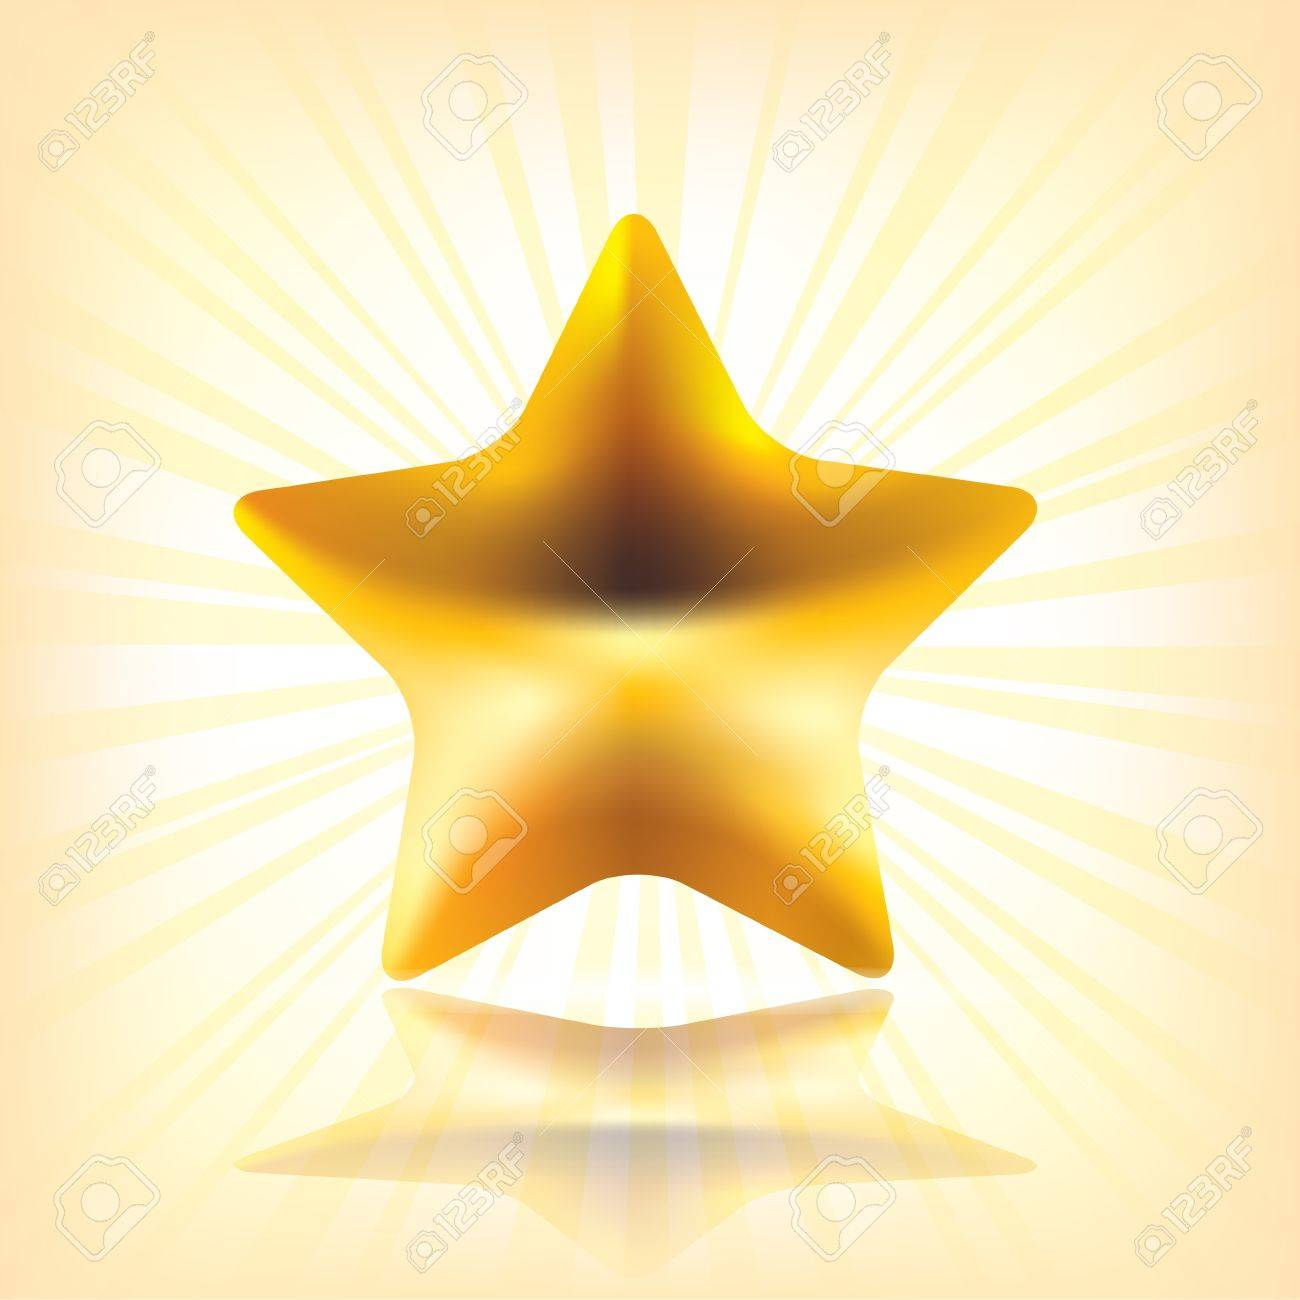 Golden Star.  Illustration contains transparent object. EPS 10. Stock Vector - 16459538